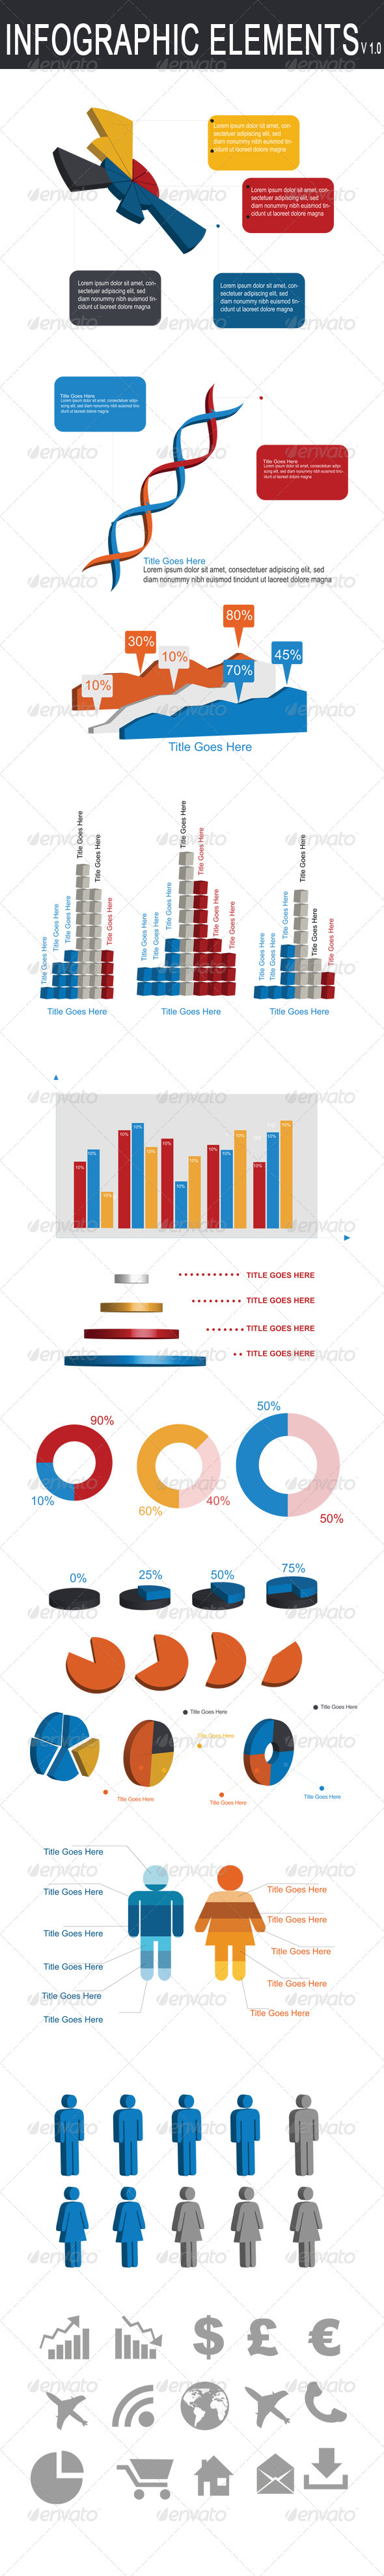 GraphicRiver Infographic Elements 3288362